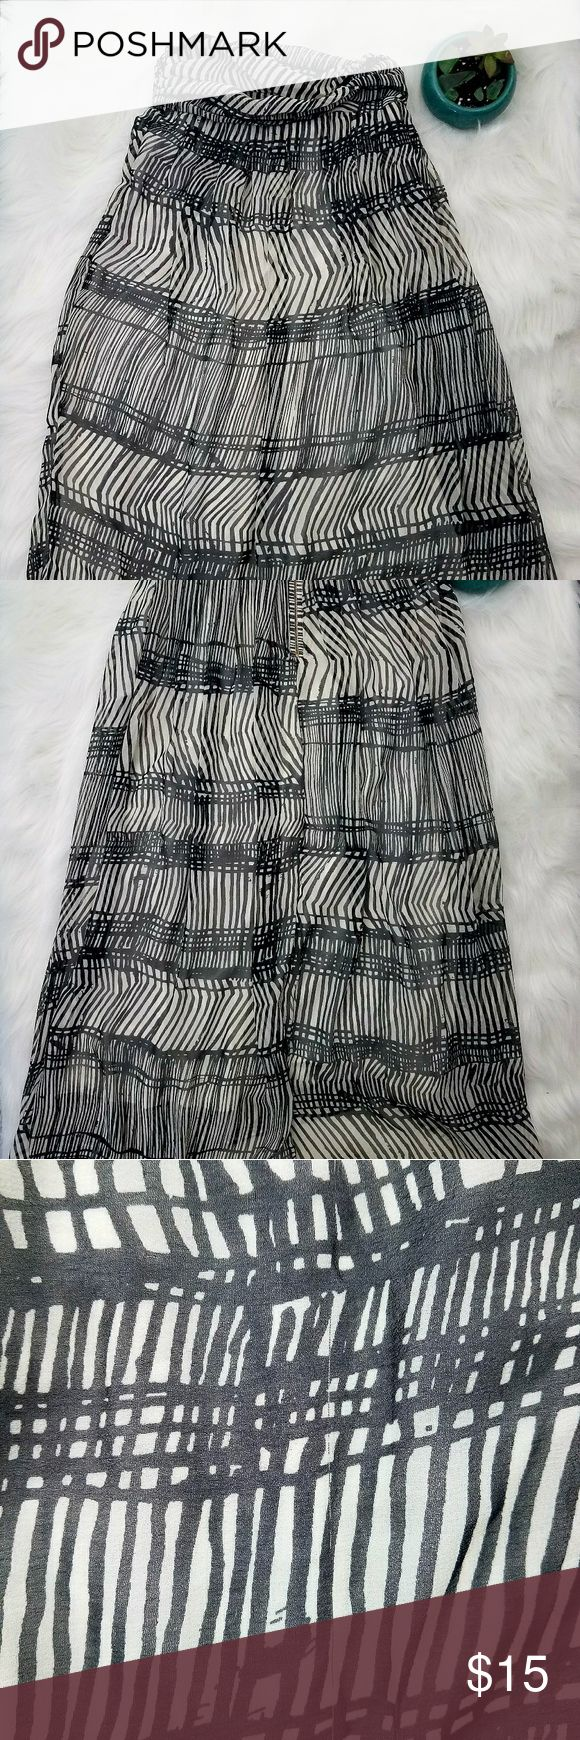 🍍3/$30🍍H&M black and white Strapless Maxi Dress H&M black and white Strapless Maxi Dress Size 4. This still has the original tags on it but there are a few snags and pulls throughout the dress. Can only notice then when looking close. H&M Dresses Maxi